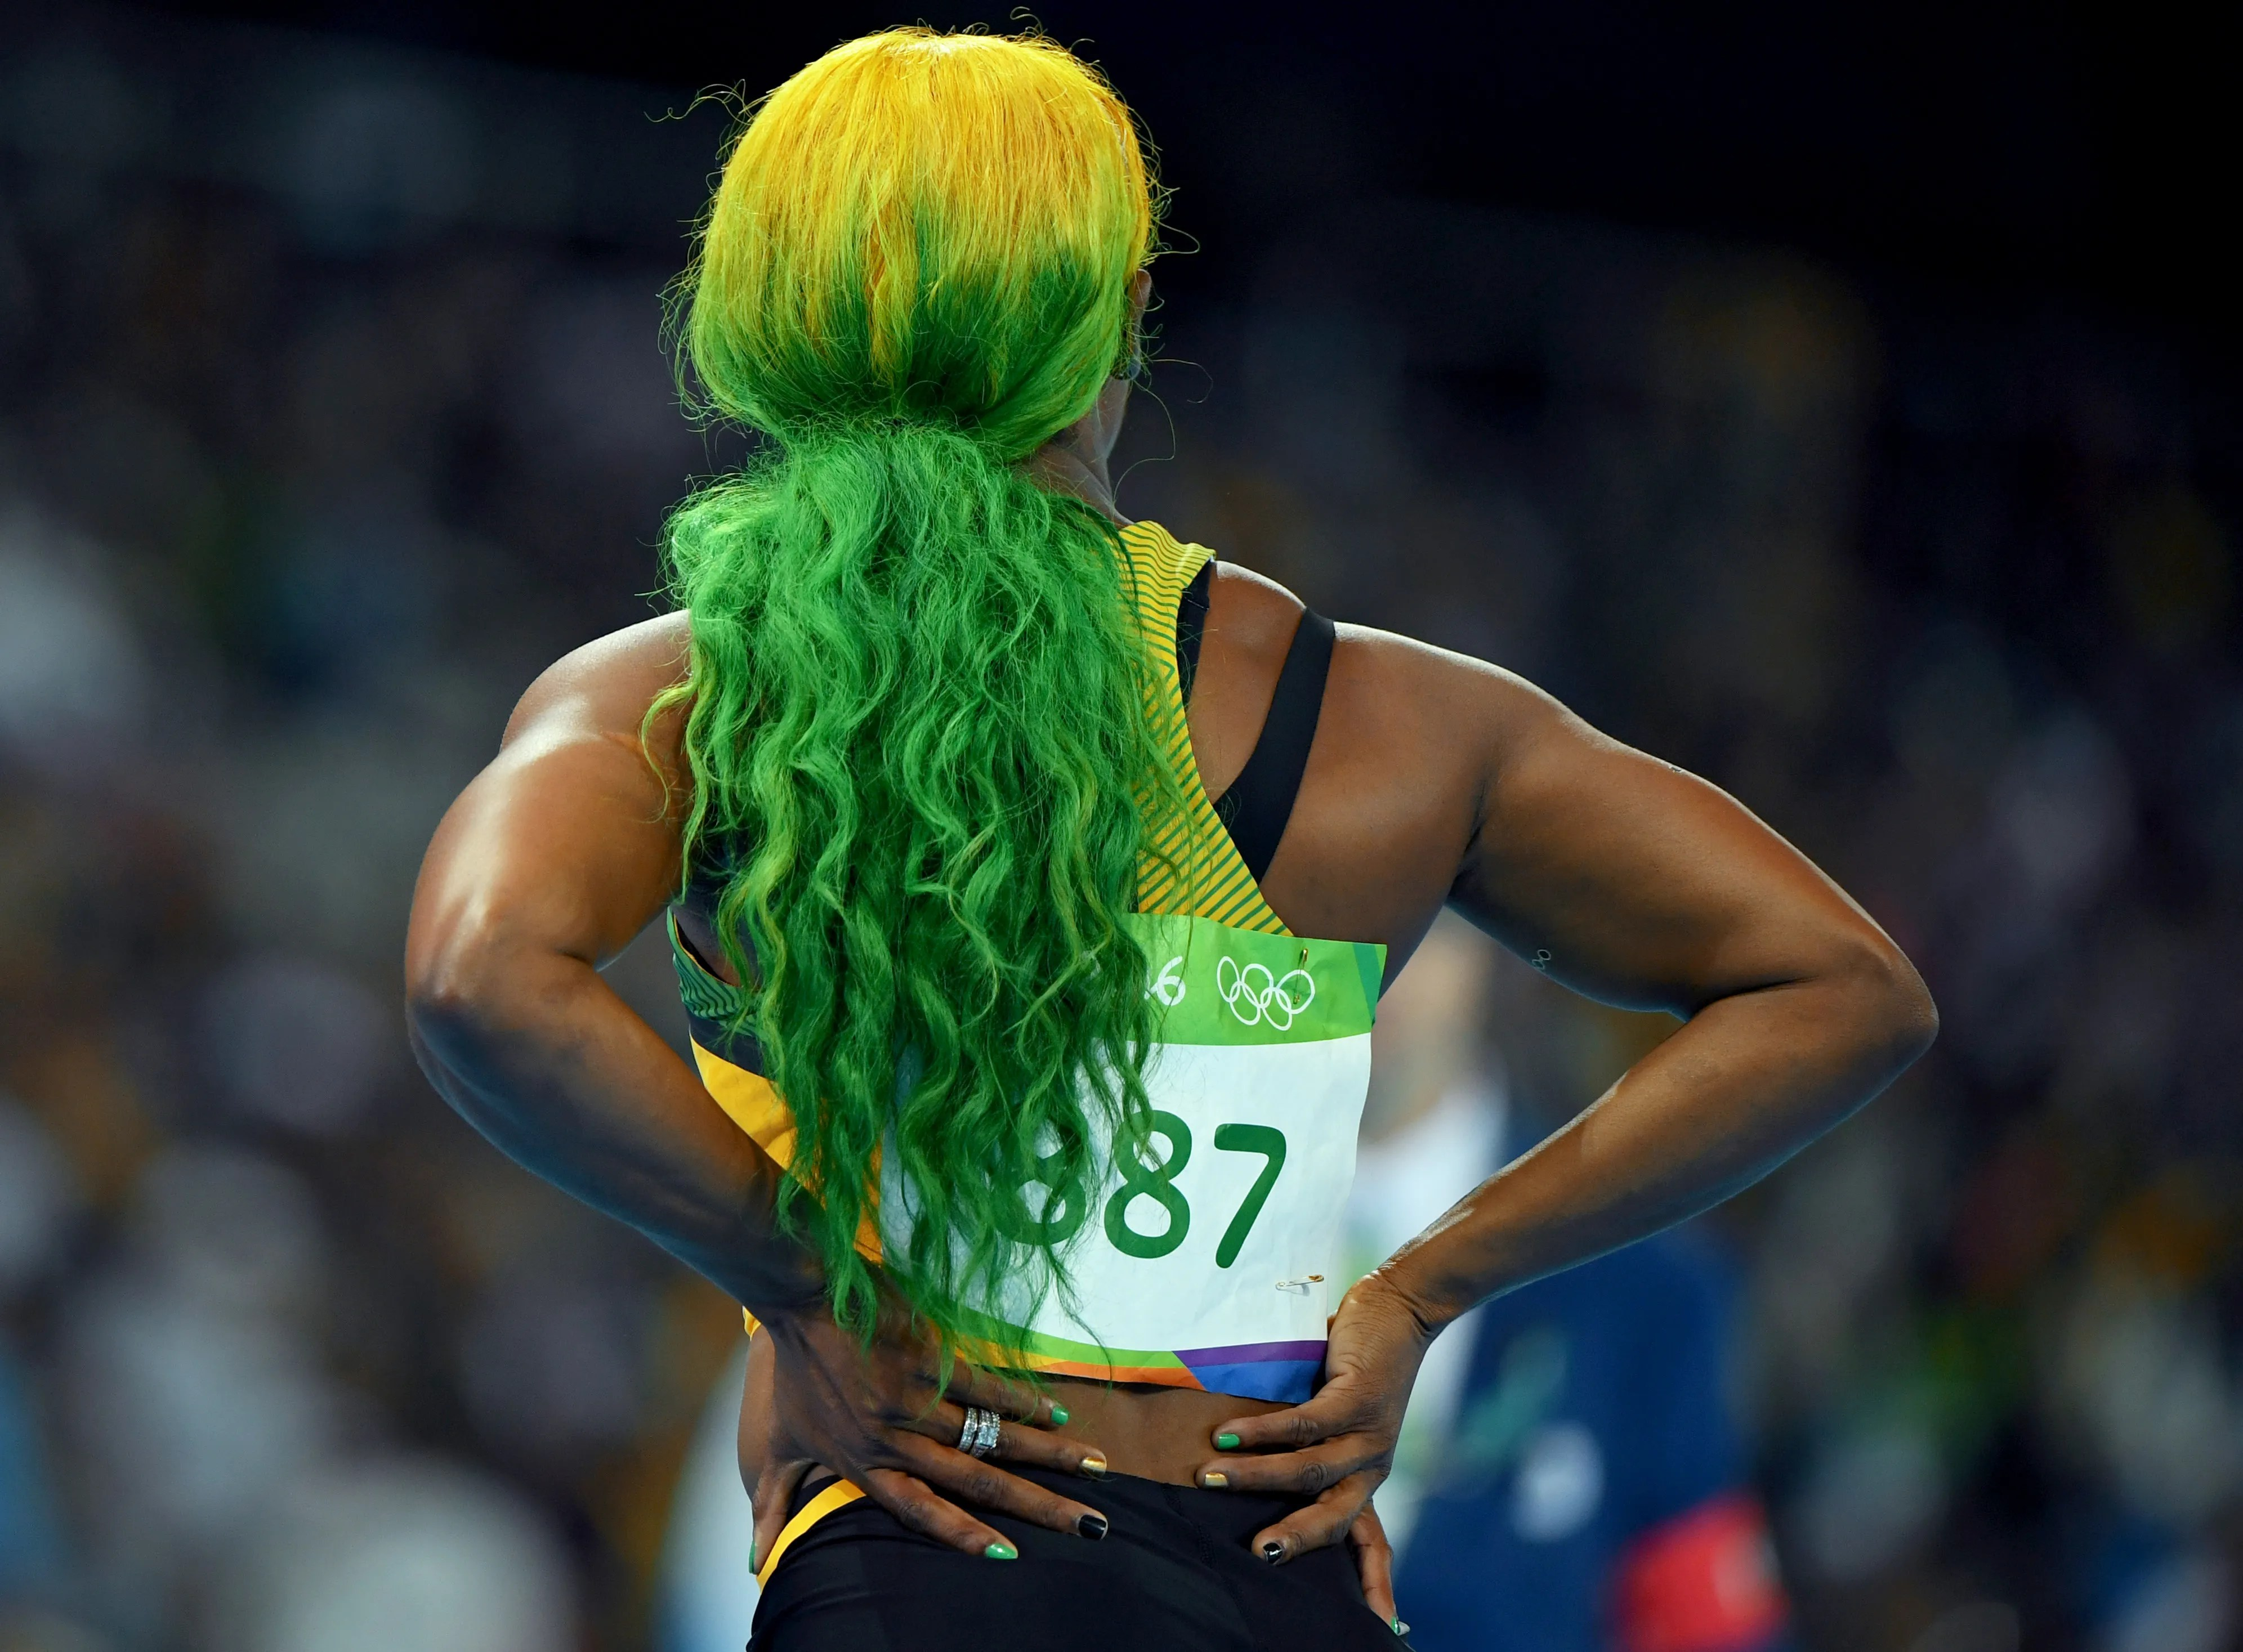 Epic BlackGirlMagic Looks From Olympic Track And Field